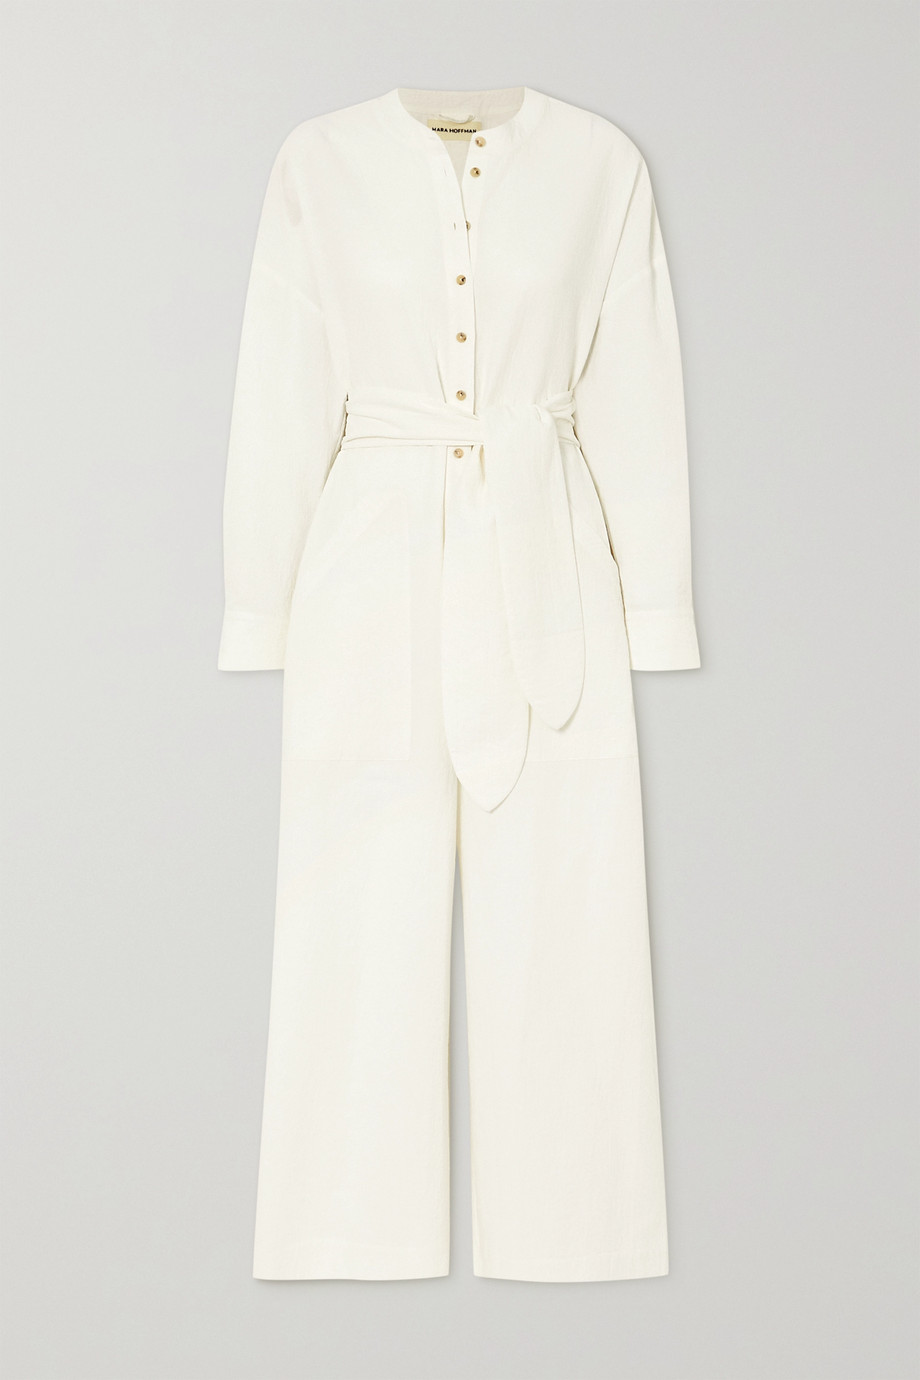 Mara Hoffman + NET SUSTAIN x LG Electronics Mandra belted crinkled organic cotton jumpsuit